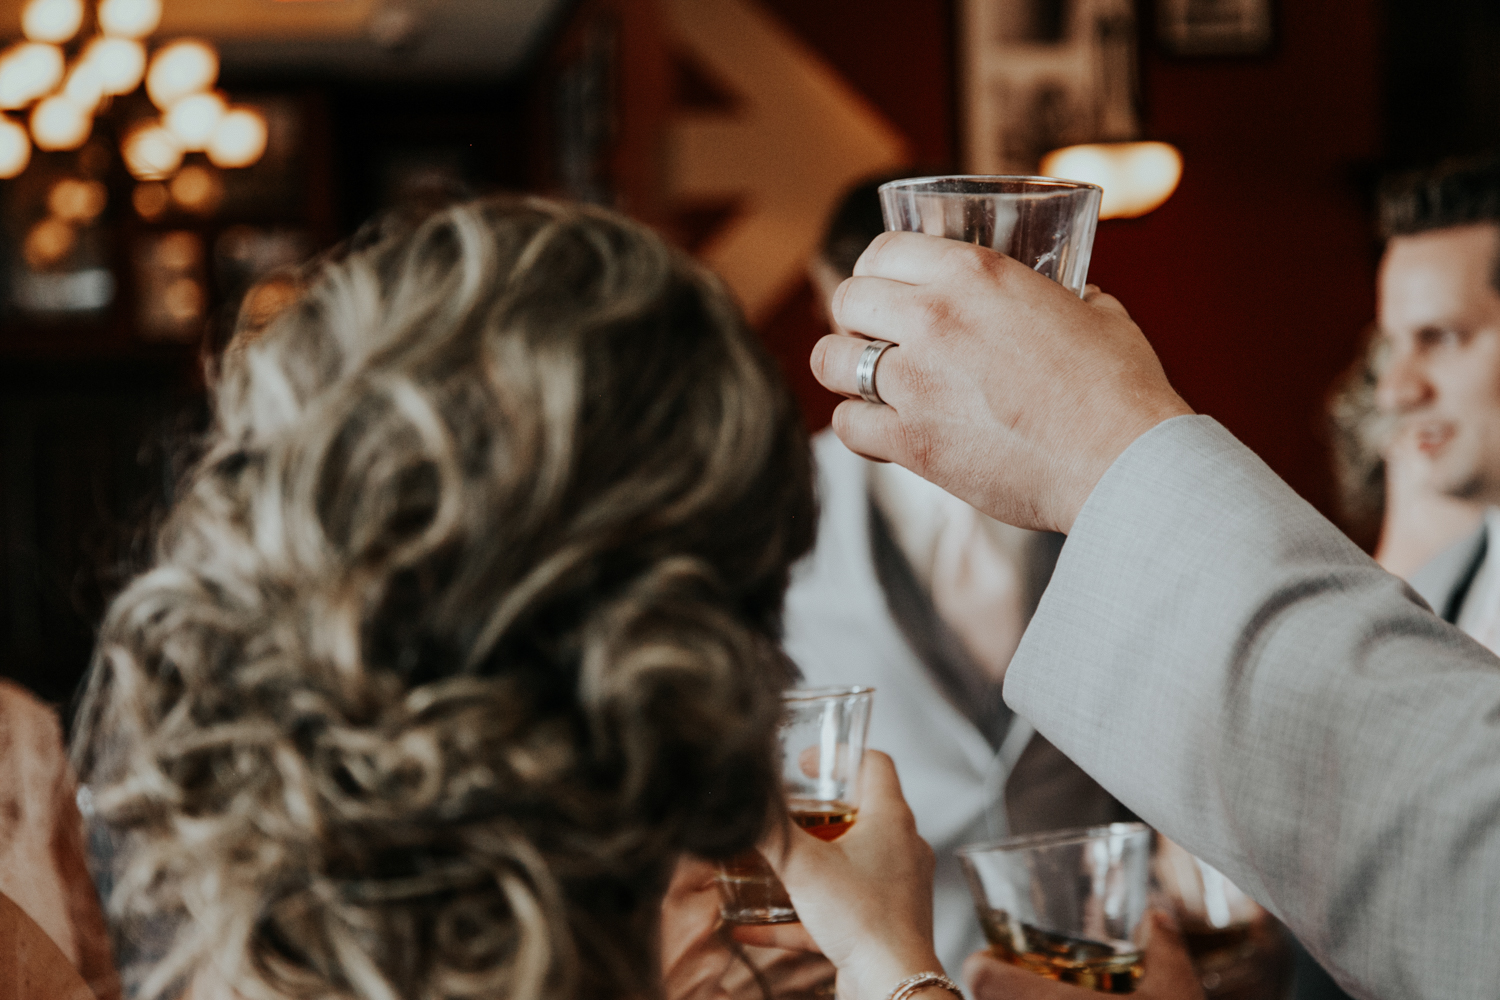 hudsons-tap-house-lethbridge-love-and-be-loved-photography-wedding-image-picture-photo-12.jpg